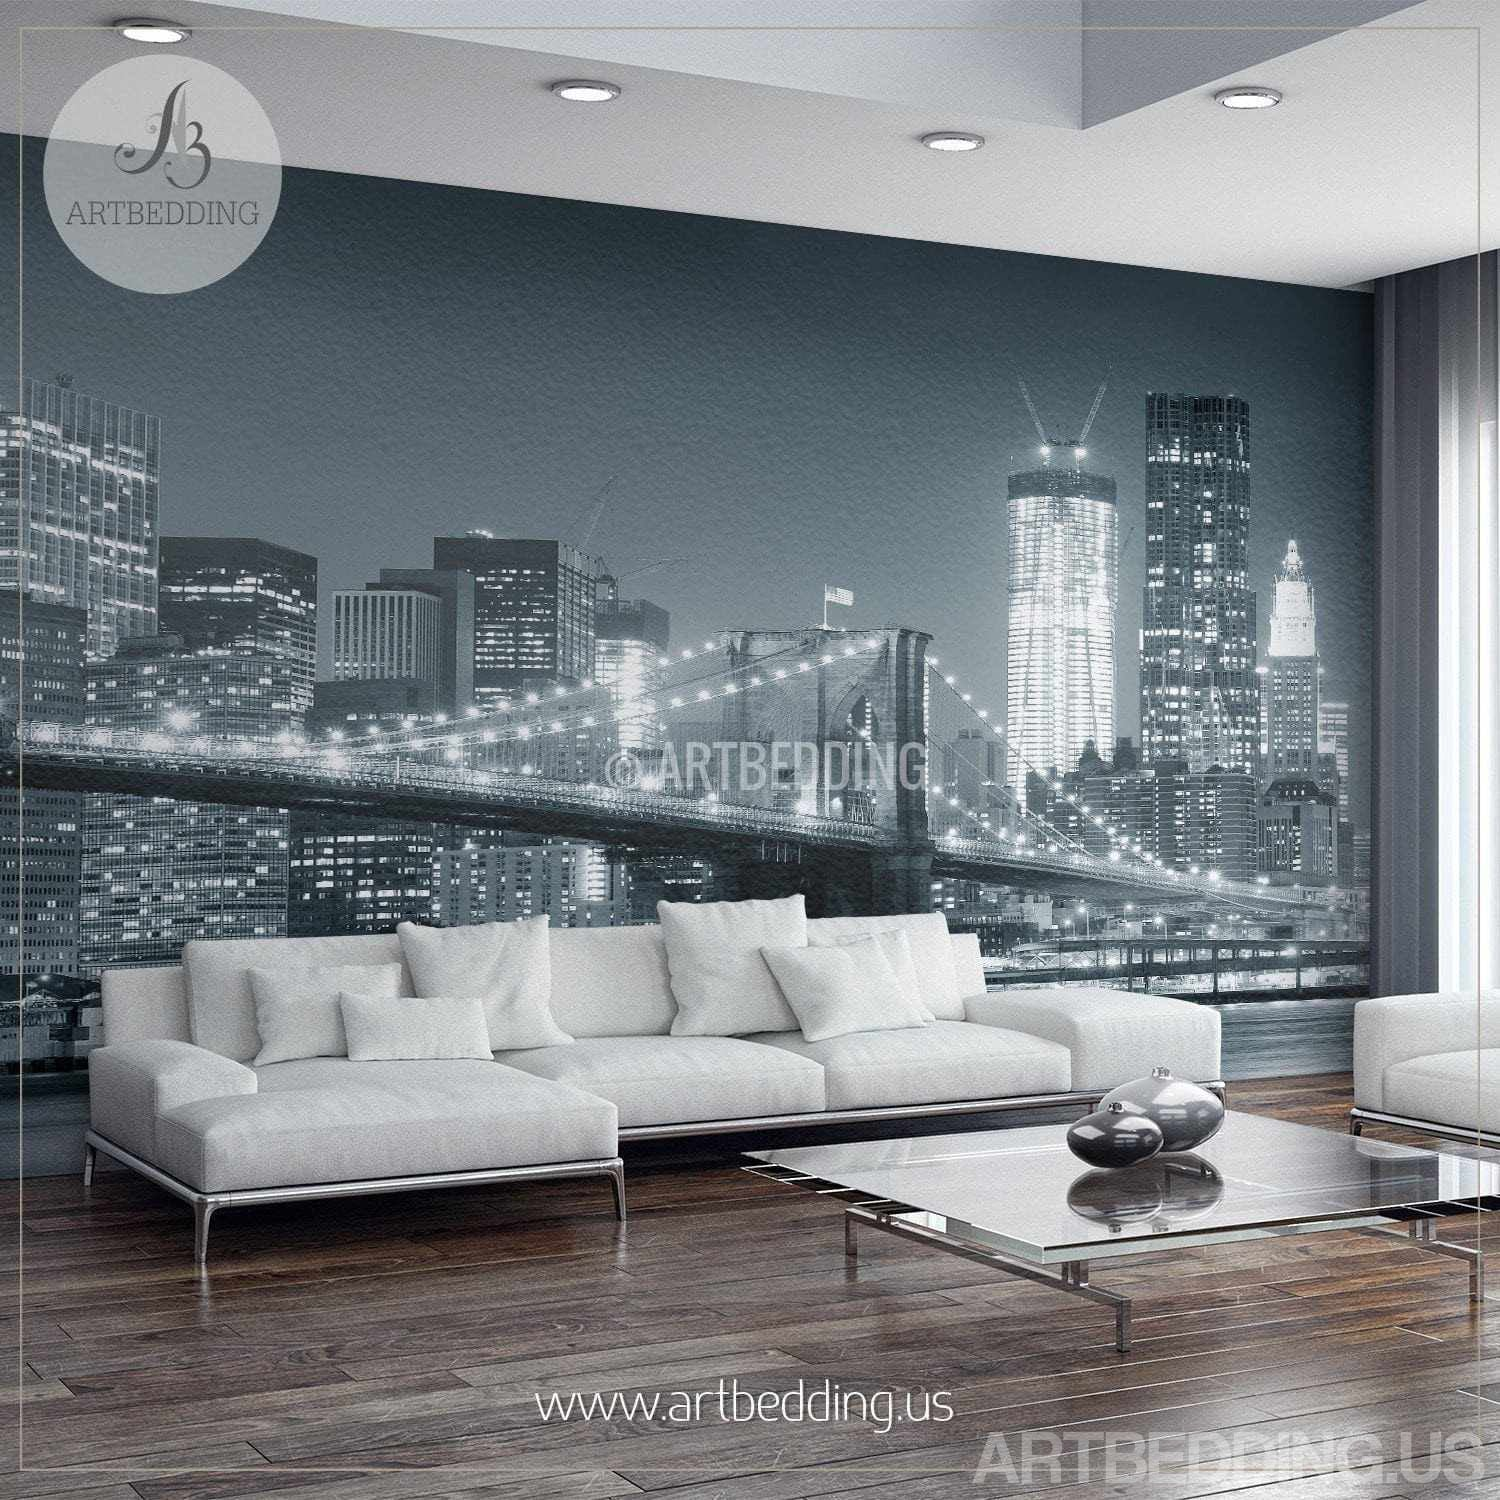 New York Cityscape Wall Mural Brooklyn Bridge Photo sticker